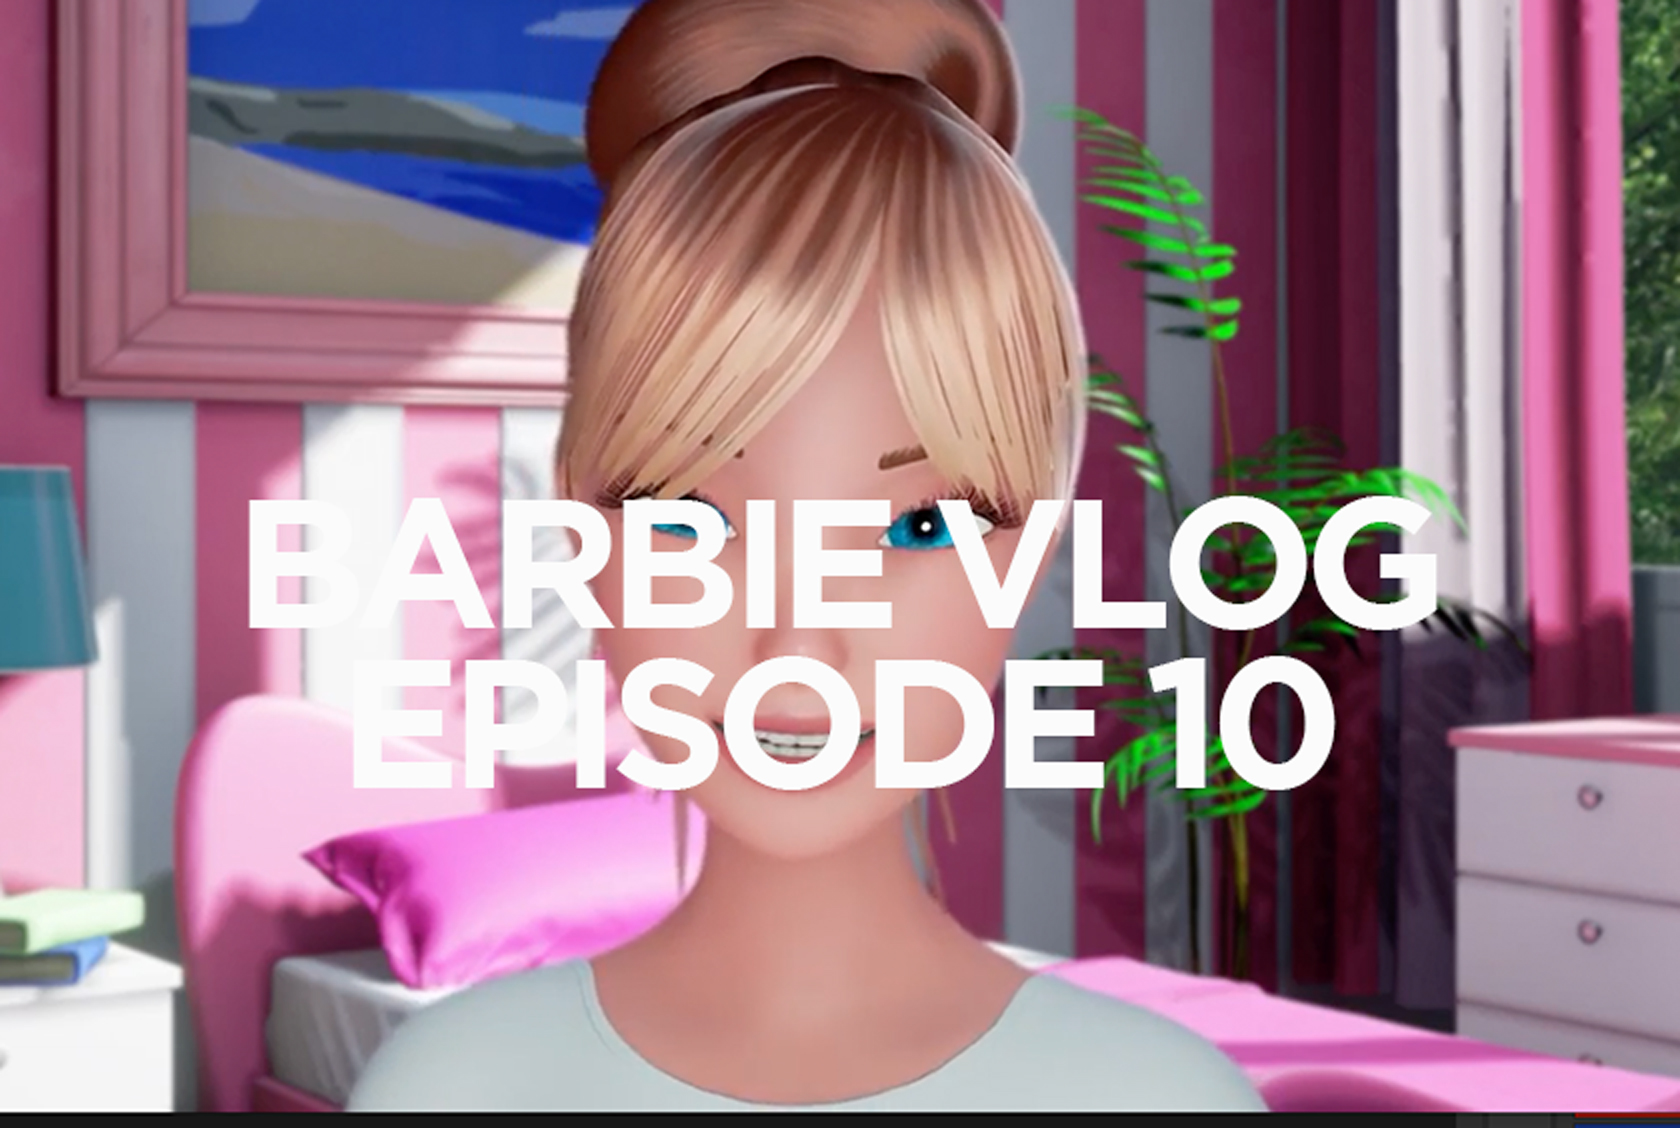 BARBIE VLOG EPISODE 10